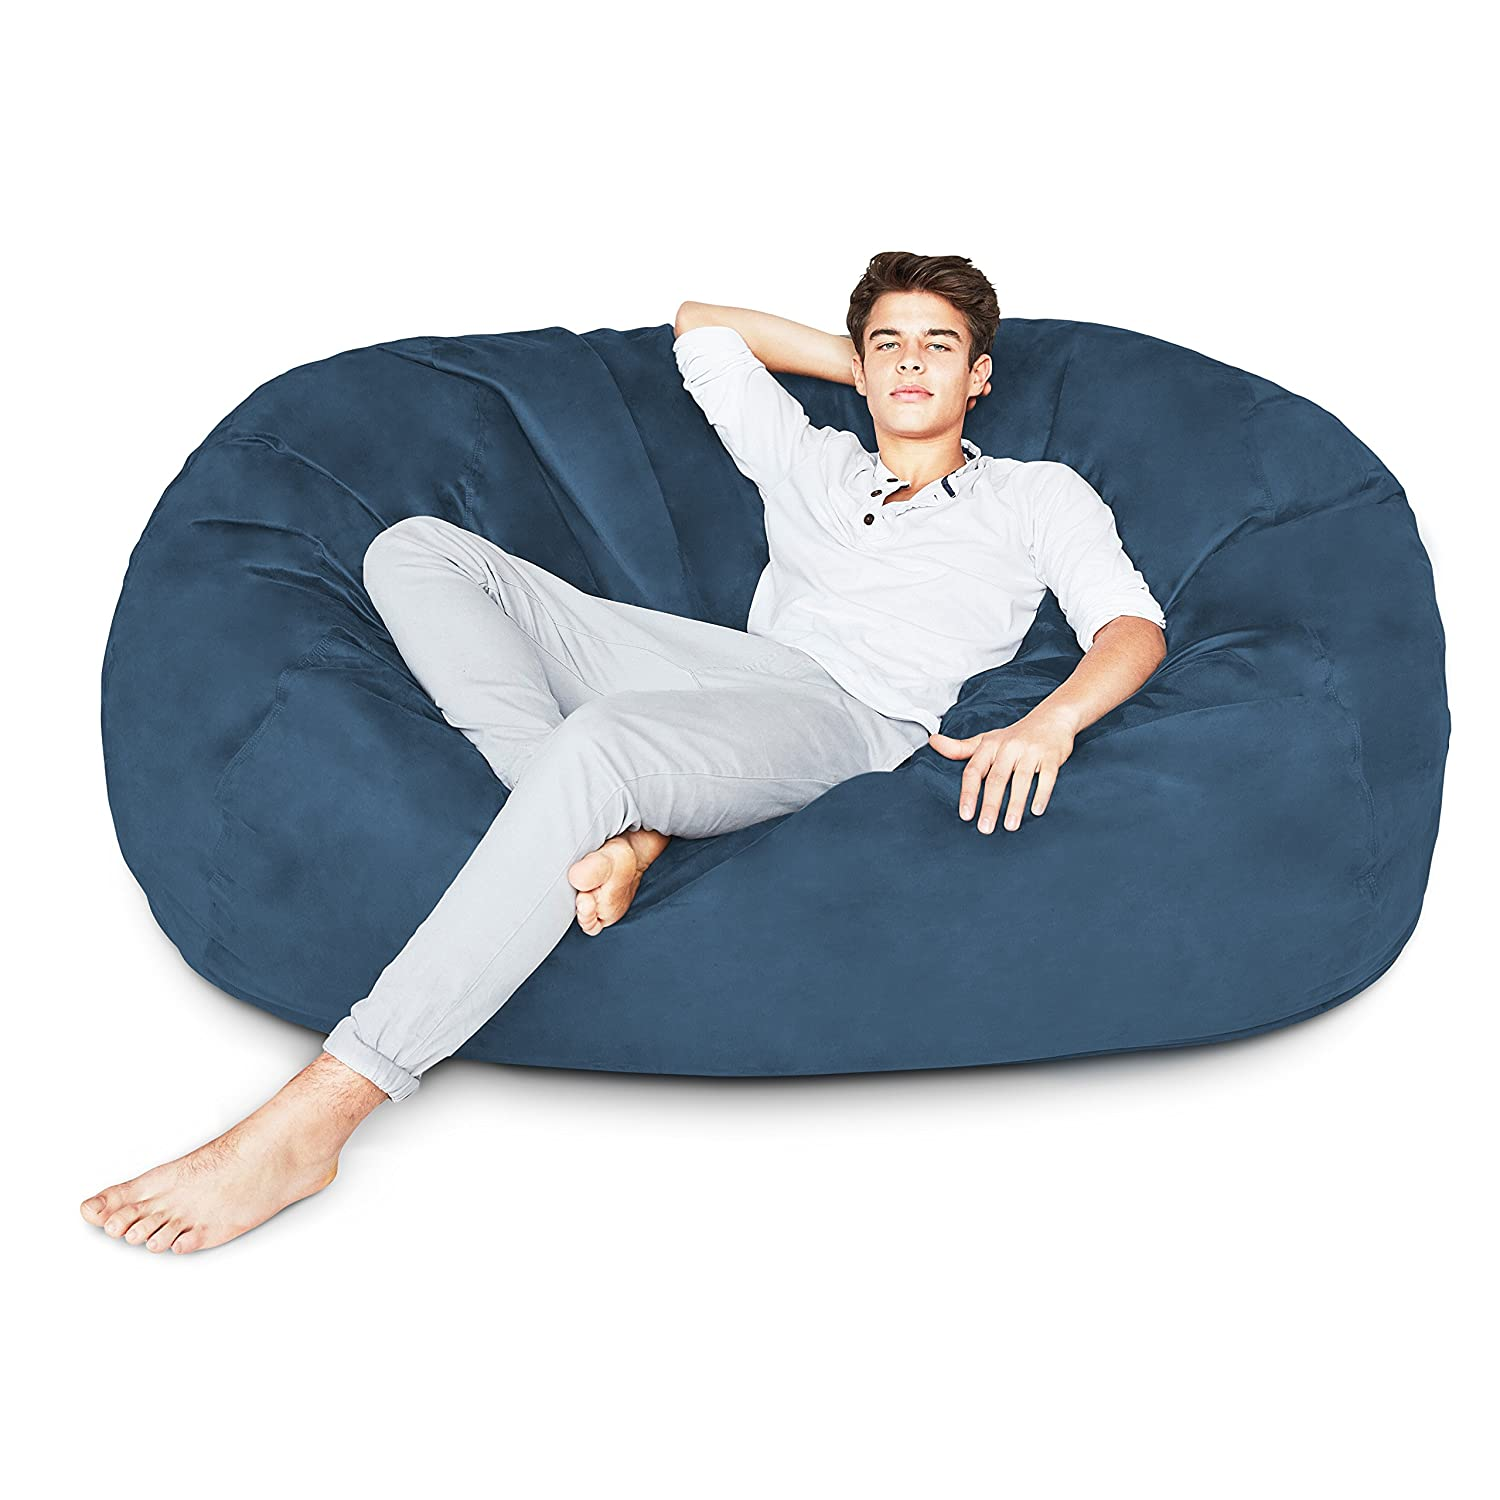 Men Sitting In Bean Bag Chairs